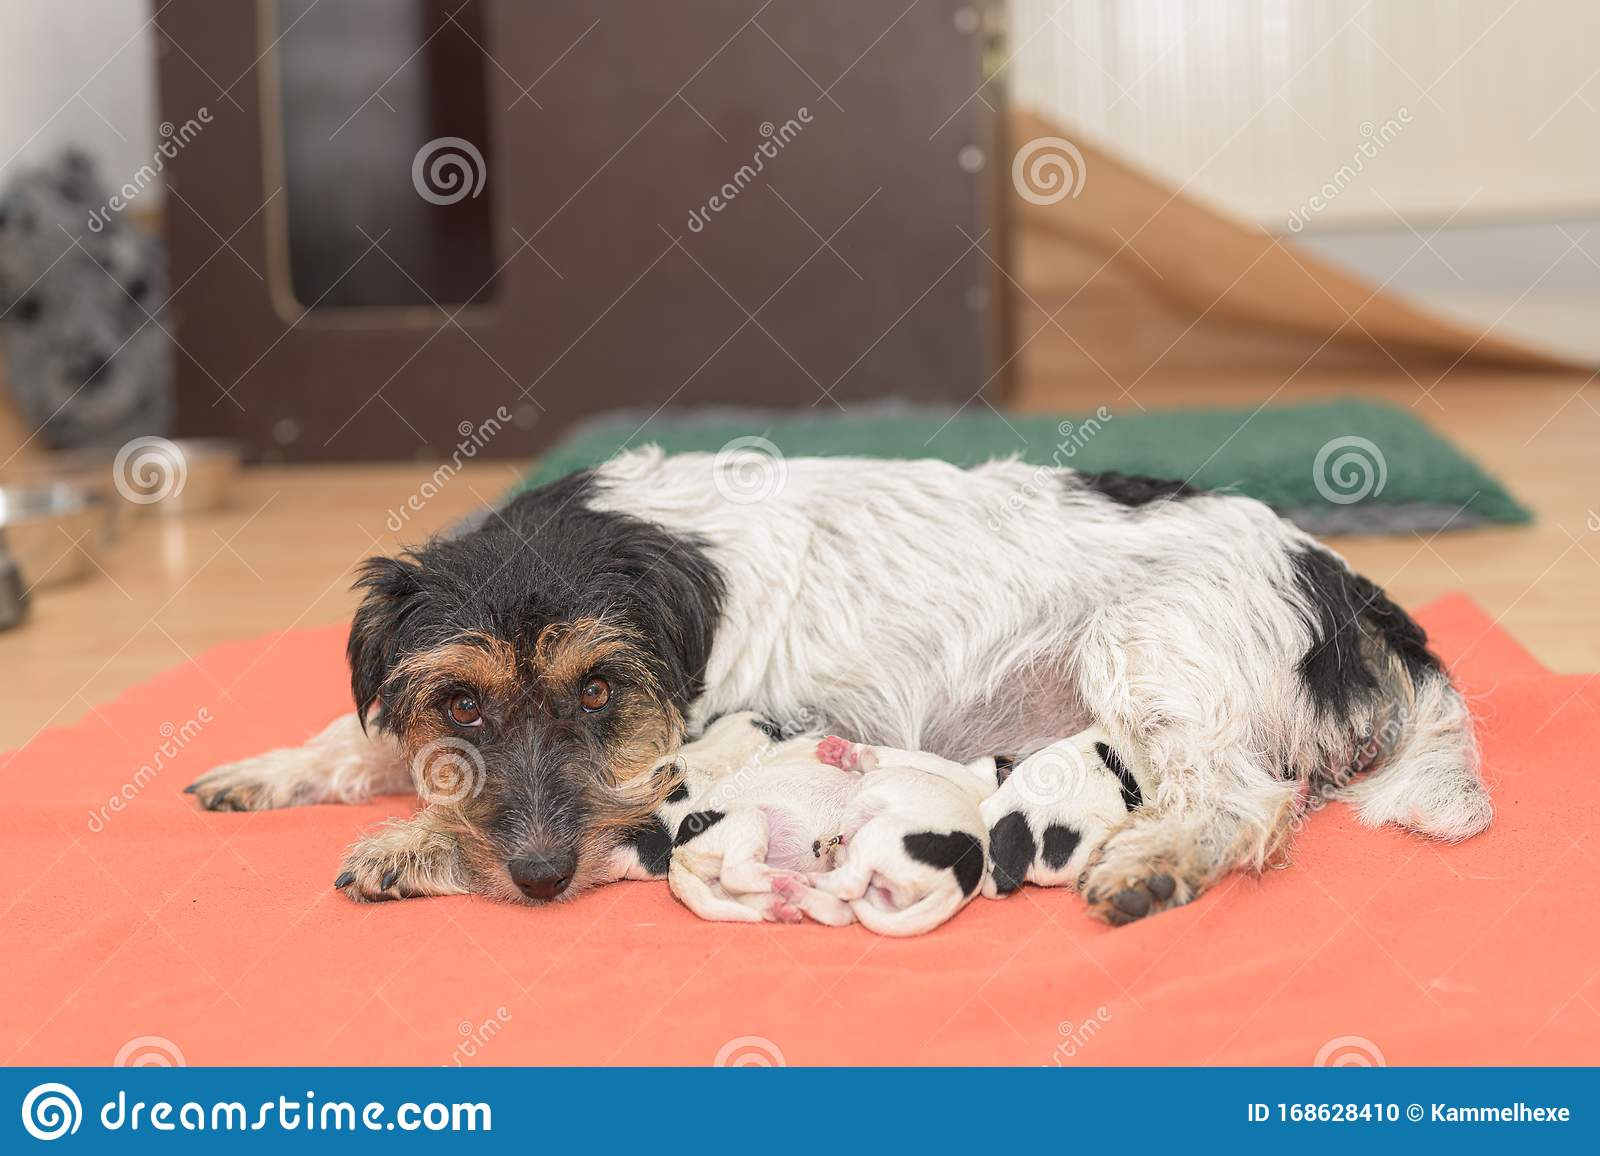 Pups On The Day Of Birth 0 Days Old Purebred Very Tiny Jack Russell Terrier Baby Dogs With Her Mother Newborn Puppies Are Stock Photo Image Of Breed Dogs 168628410